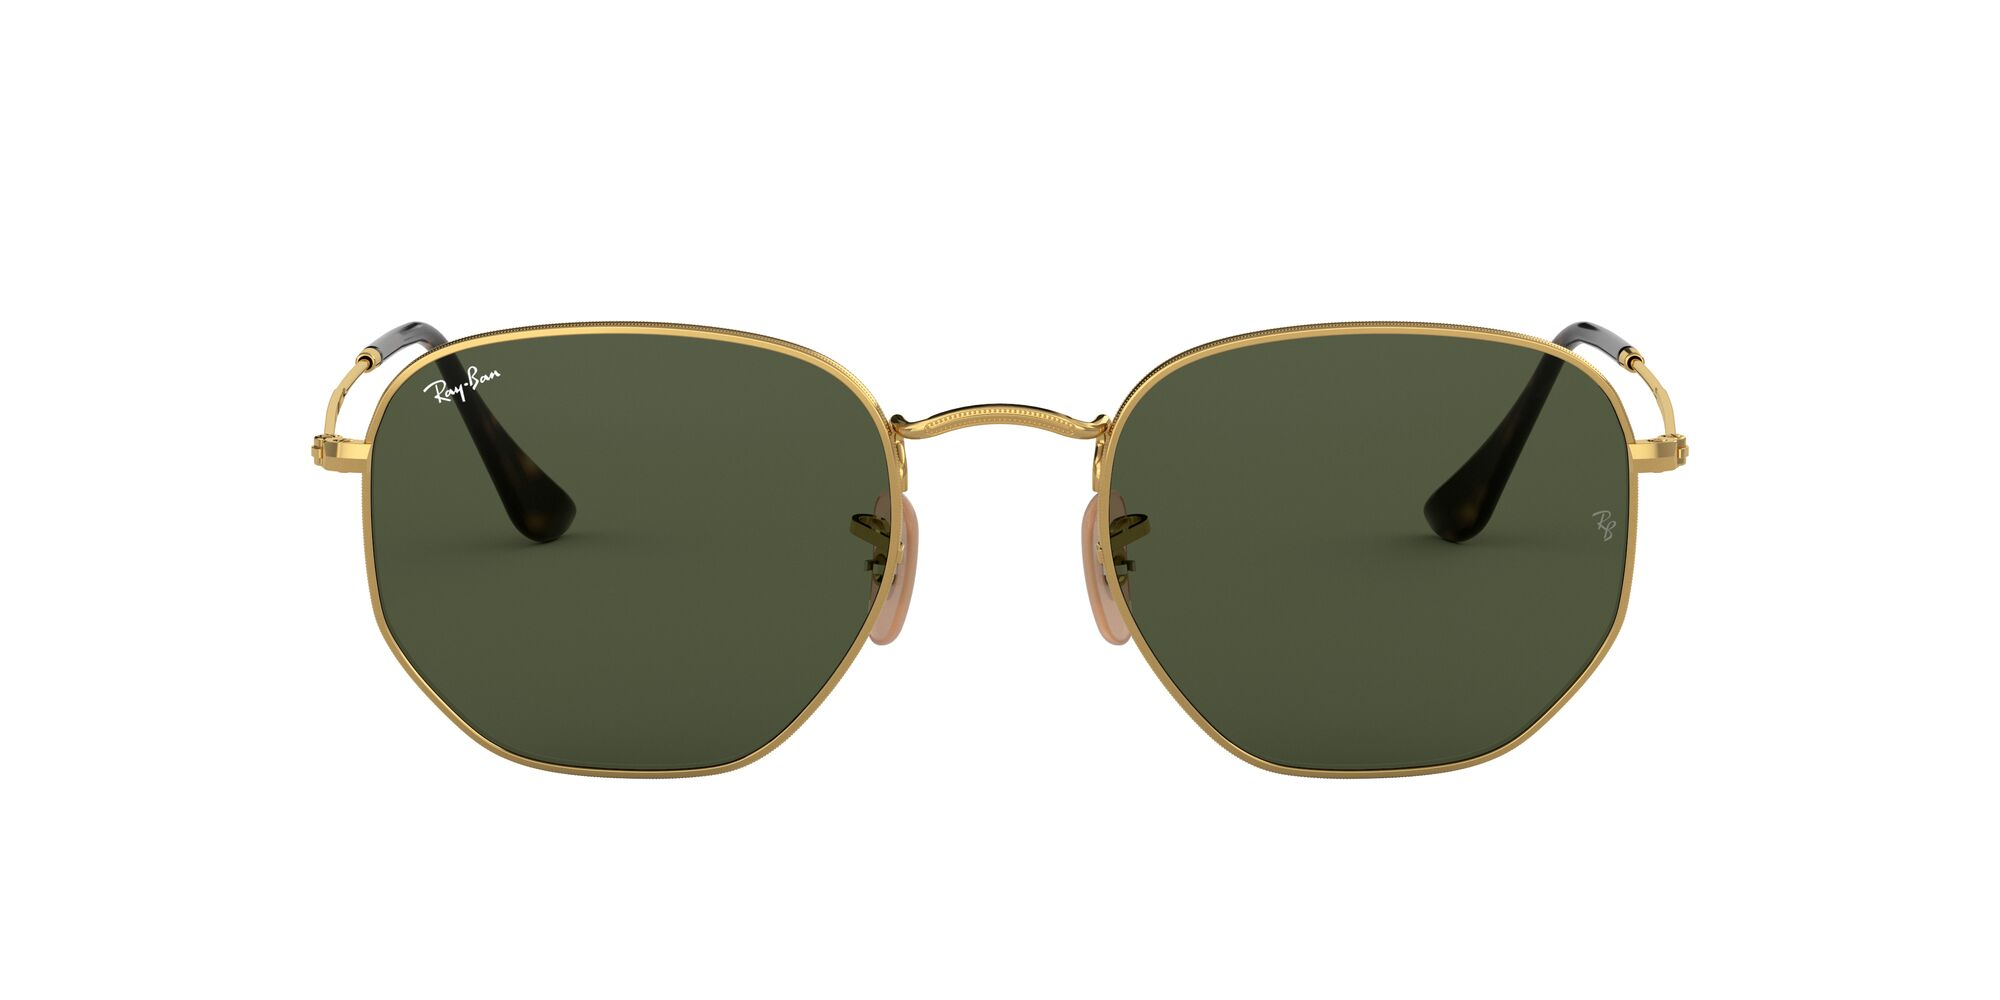 Front Ray-Ban Ray-Ban 0RB3548N 001 48/21 Goud/Groen